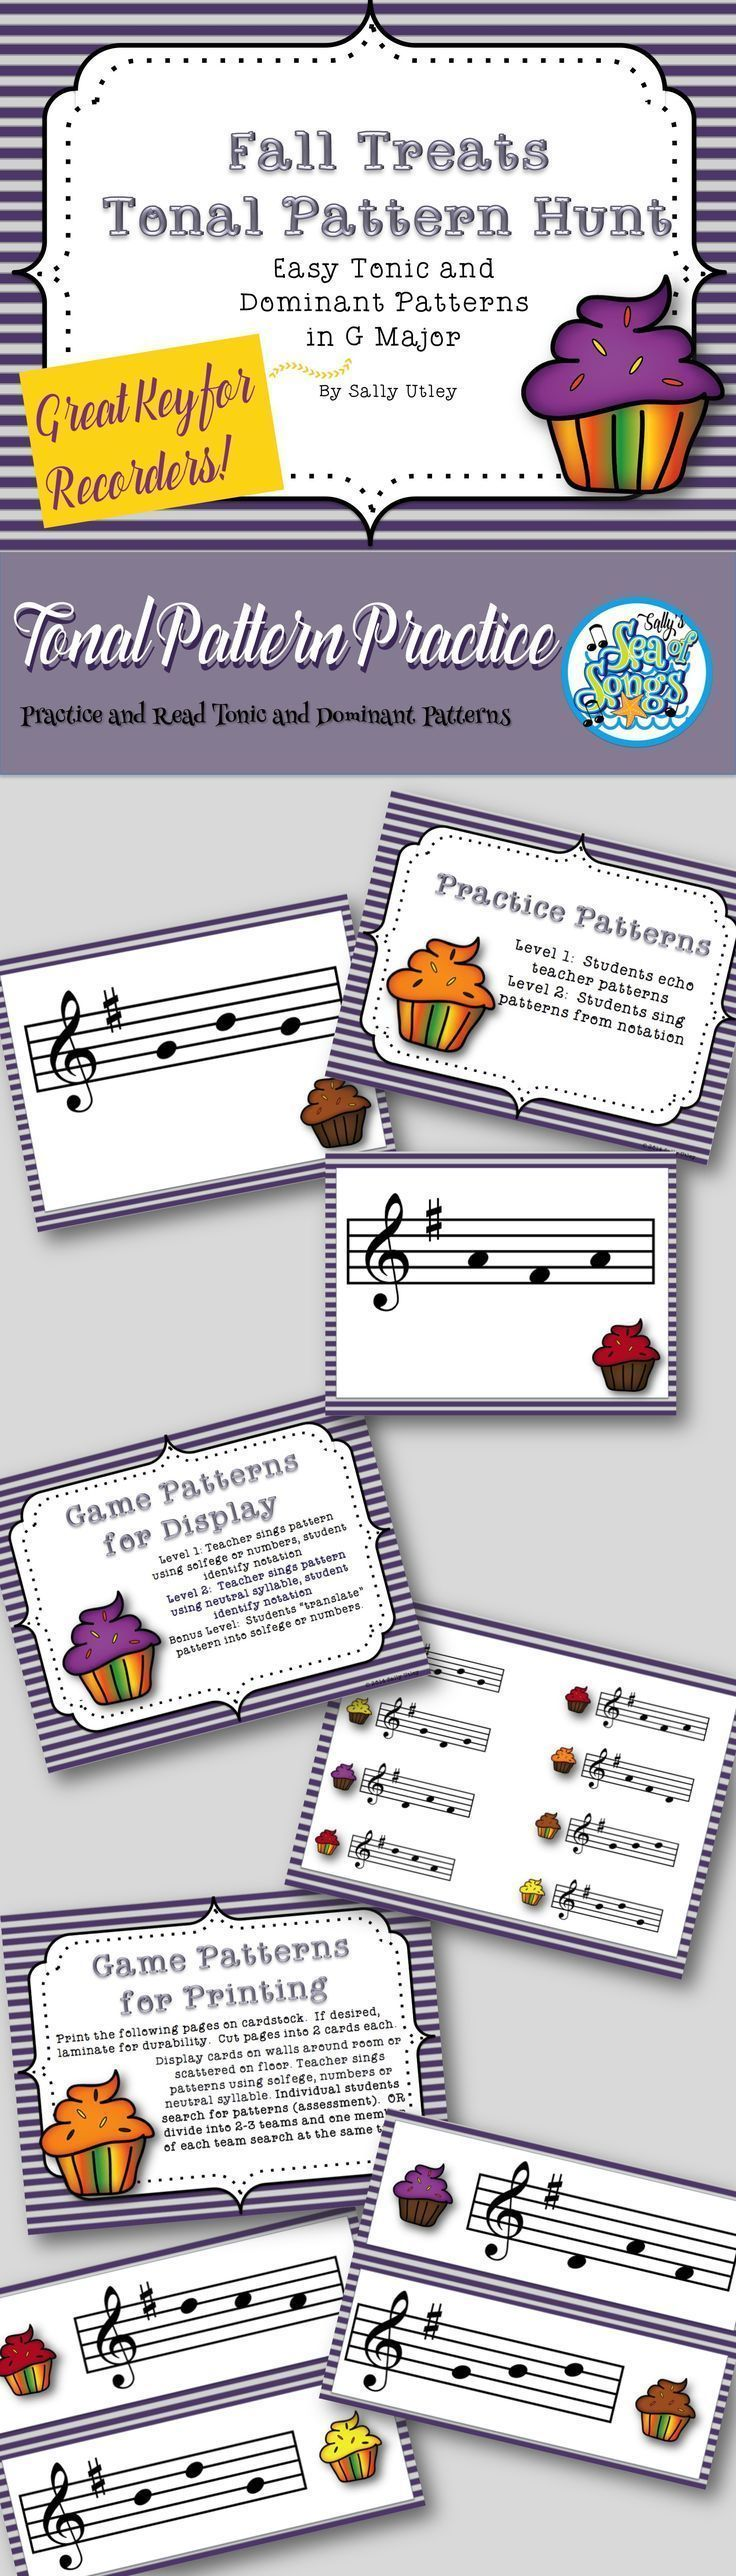 Seasonal game to reinforce and/or assess student recognition of 8 easy tonic and dominant tonal patterns in G Major Tonality. The set includes 8 practice slides to project, a game slide with all 8 patterns to project, and 8 pattern cards to print and lami